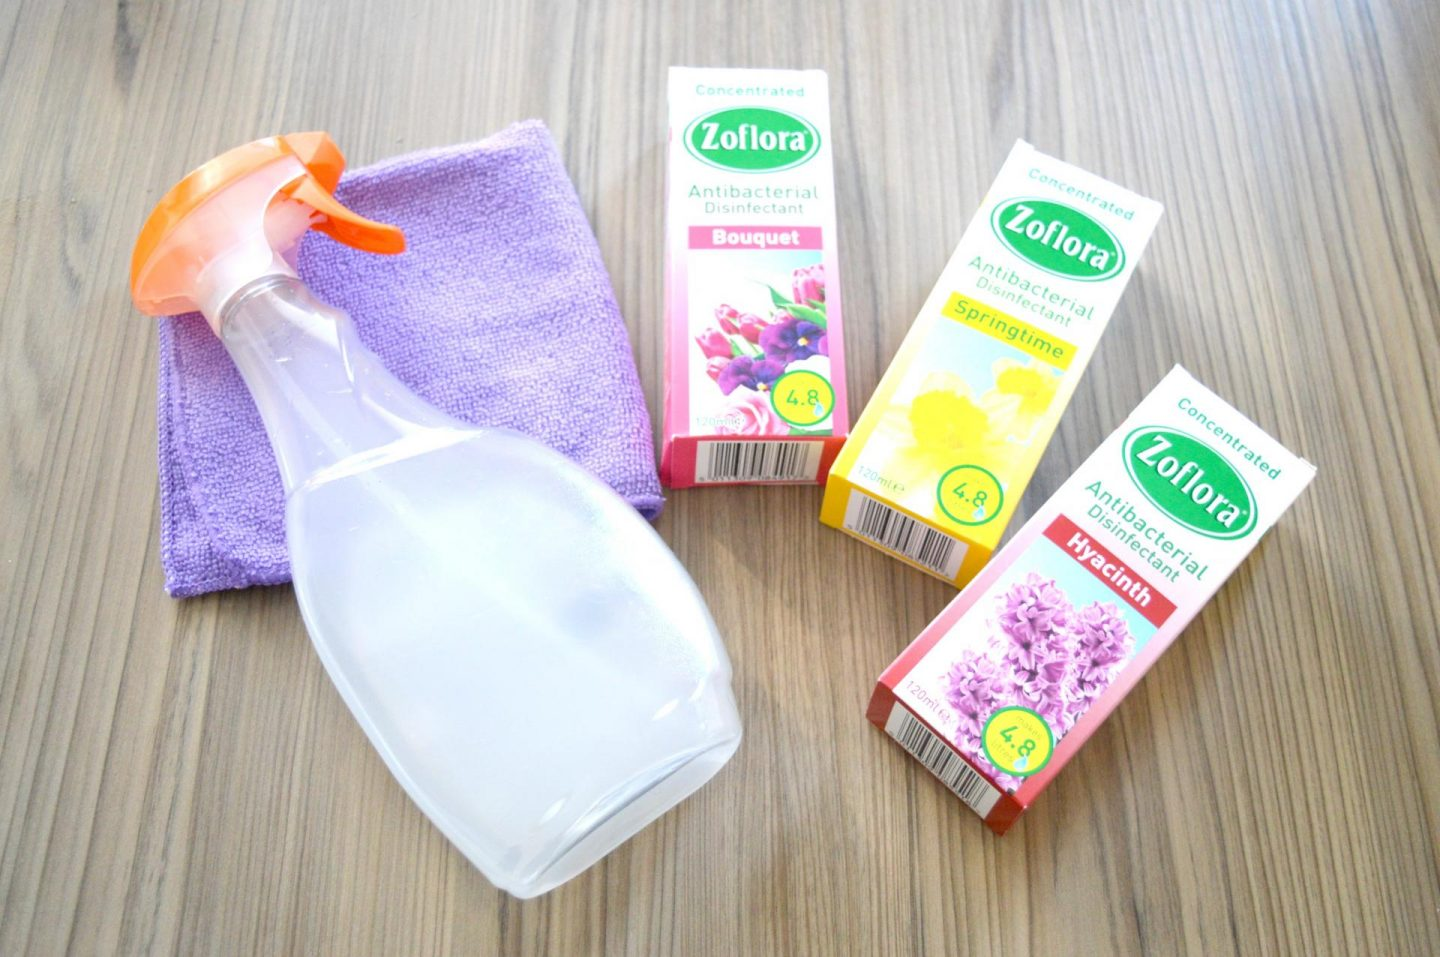 5 Ways To Make Your Home Smell Amazing With Zoflora